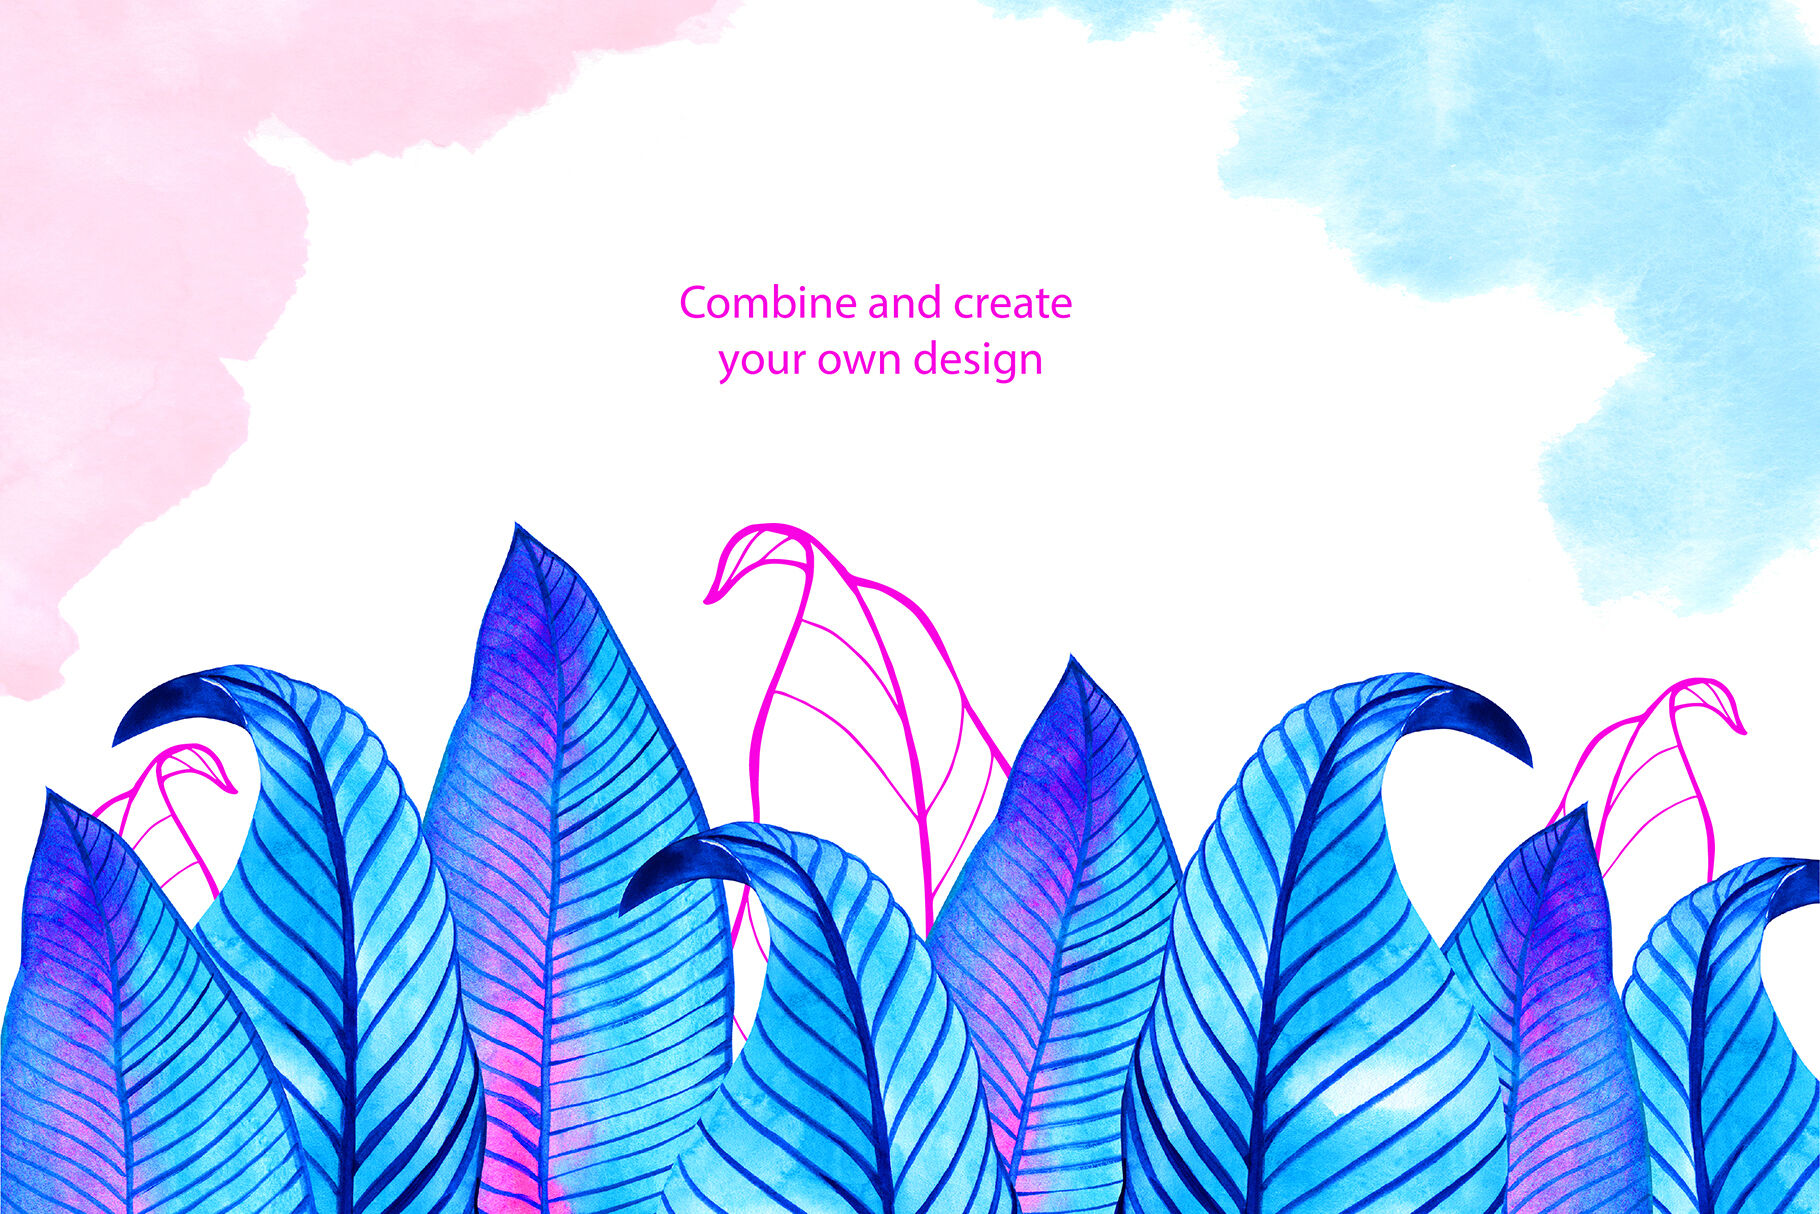 Watercolor Neon Tropical Leaves By Aquarelloaquarelle Thehungryjpeg Com Explore the new release of cogul planet. watercolor neon tropical leaves by